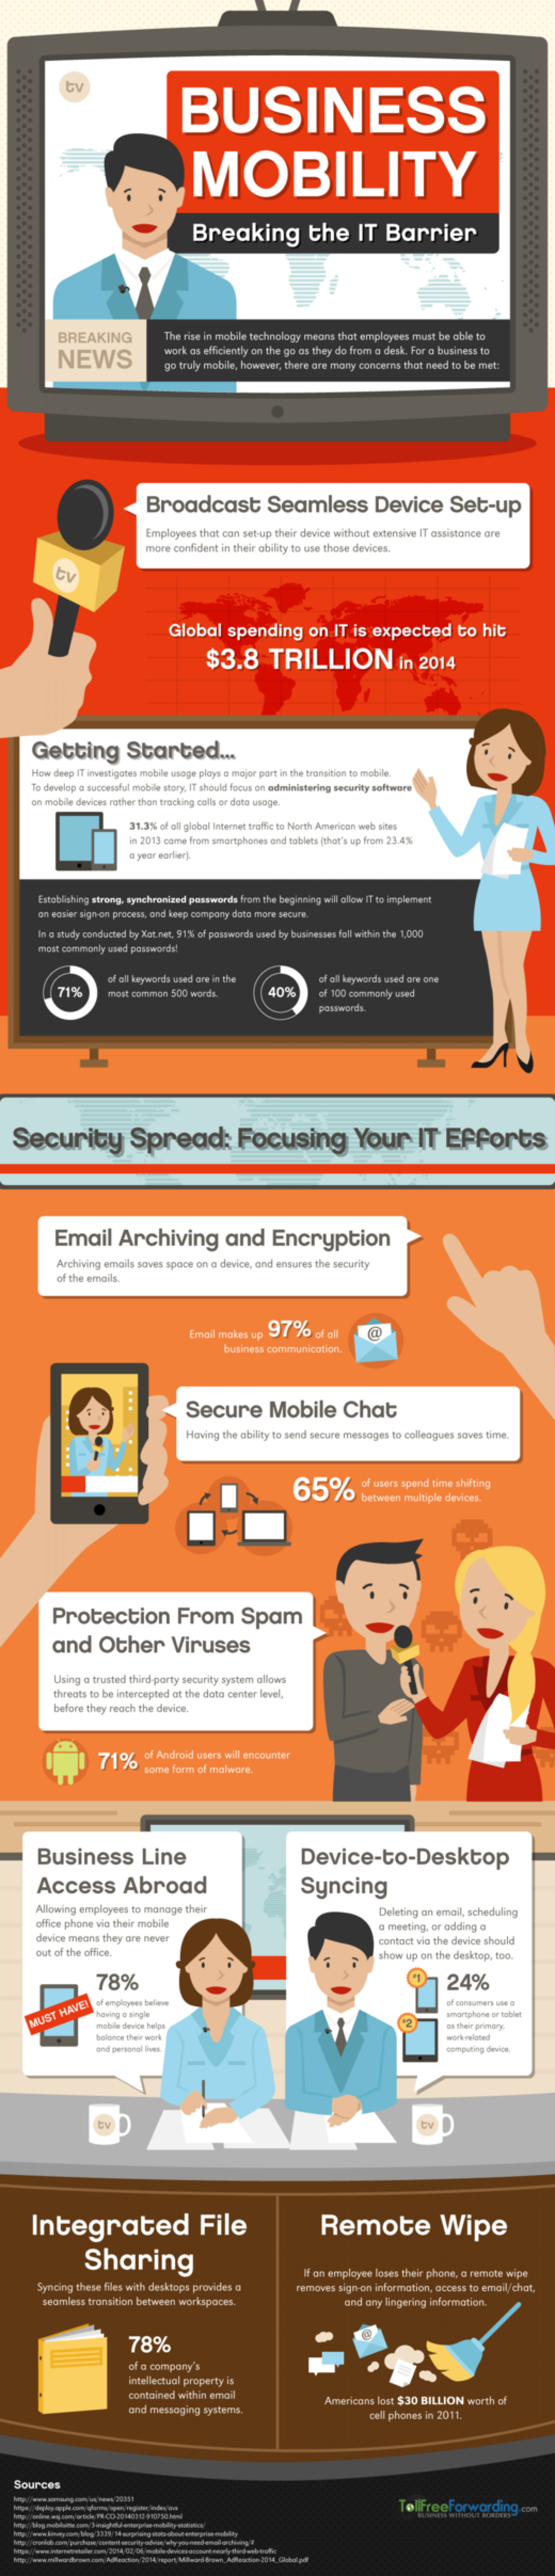 Business Mobility: Breaking the IT Barrier Infographic